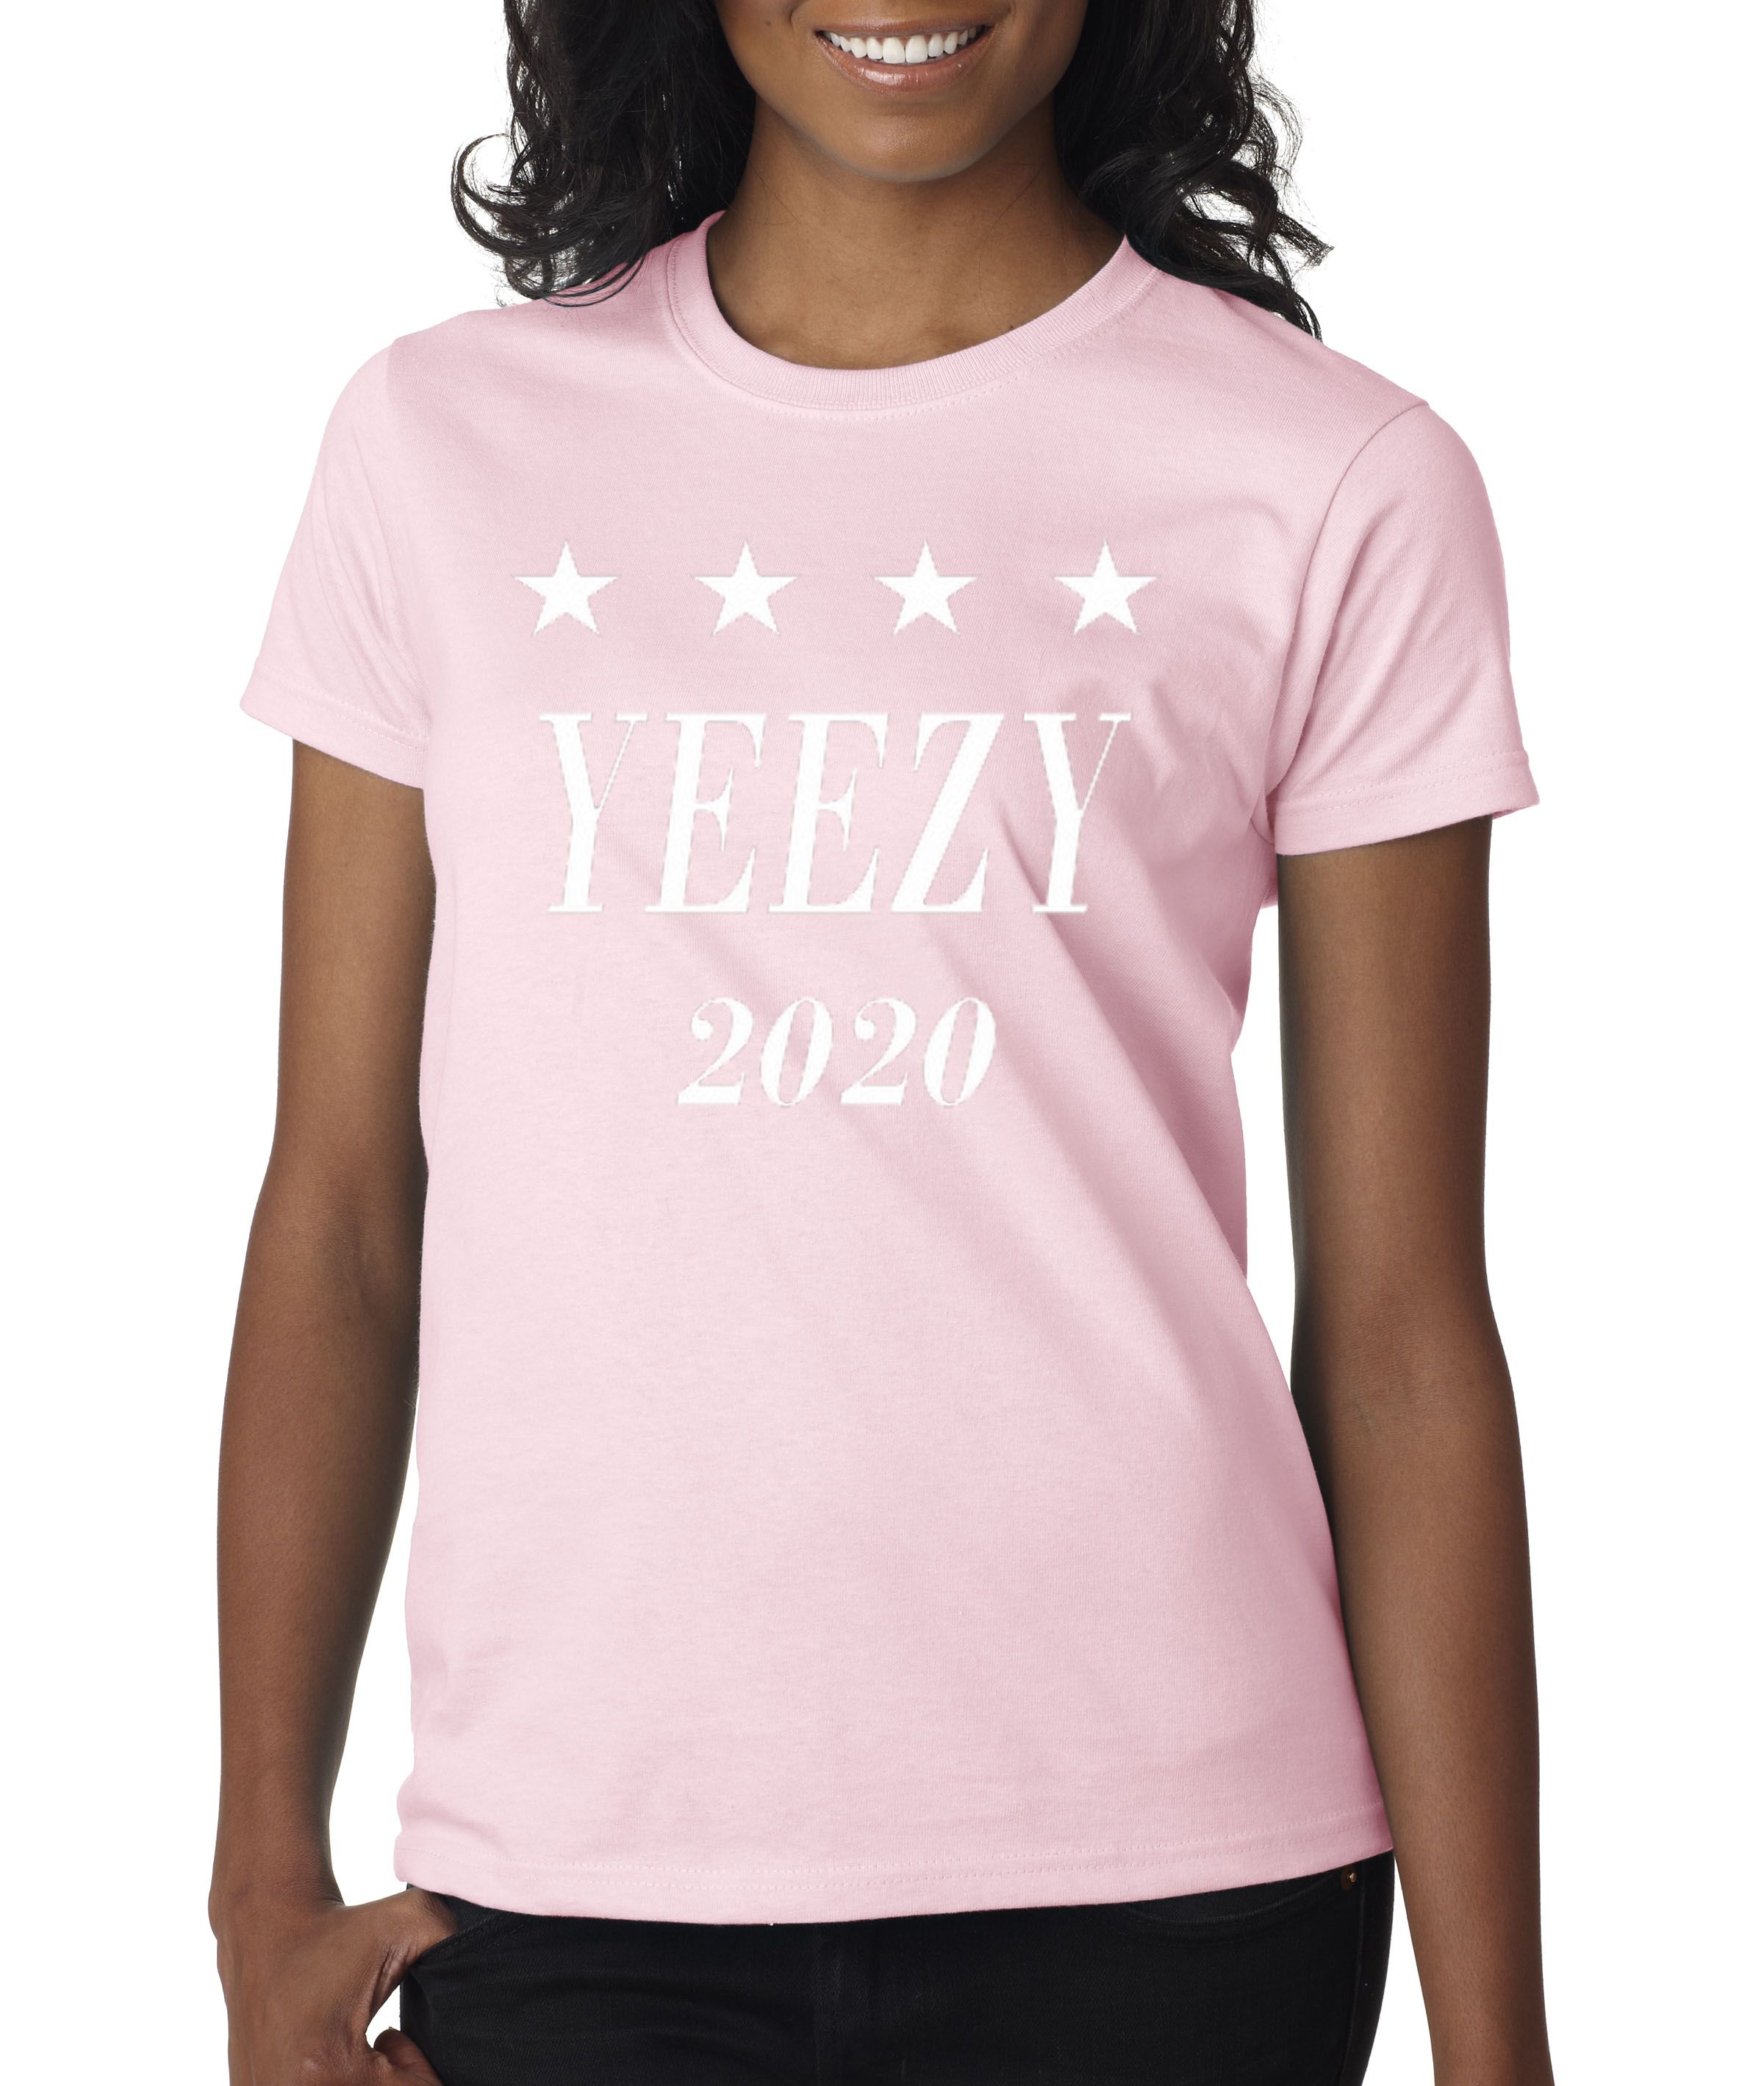 0ee2a52c255 Allwitty 1009 - Women's T-Shirt Yeezy 2020 Kanye West President Election